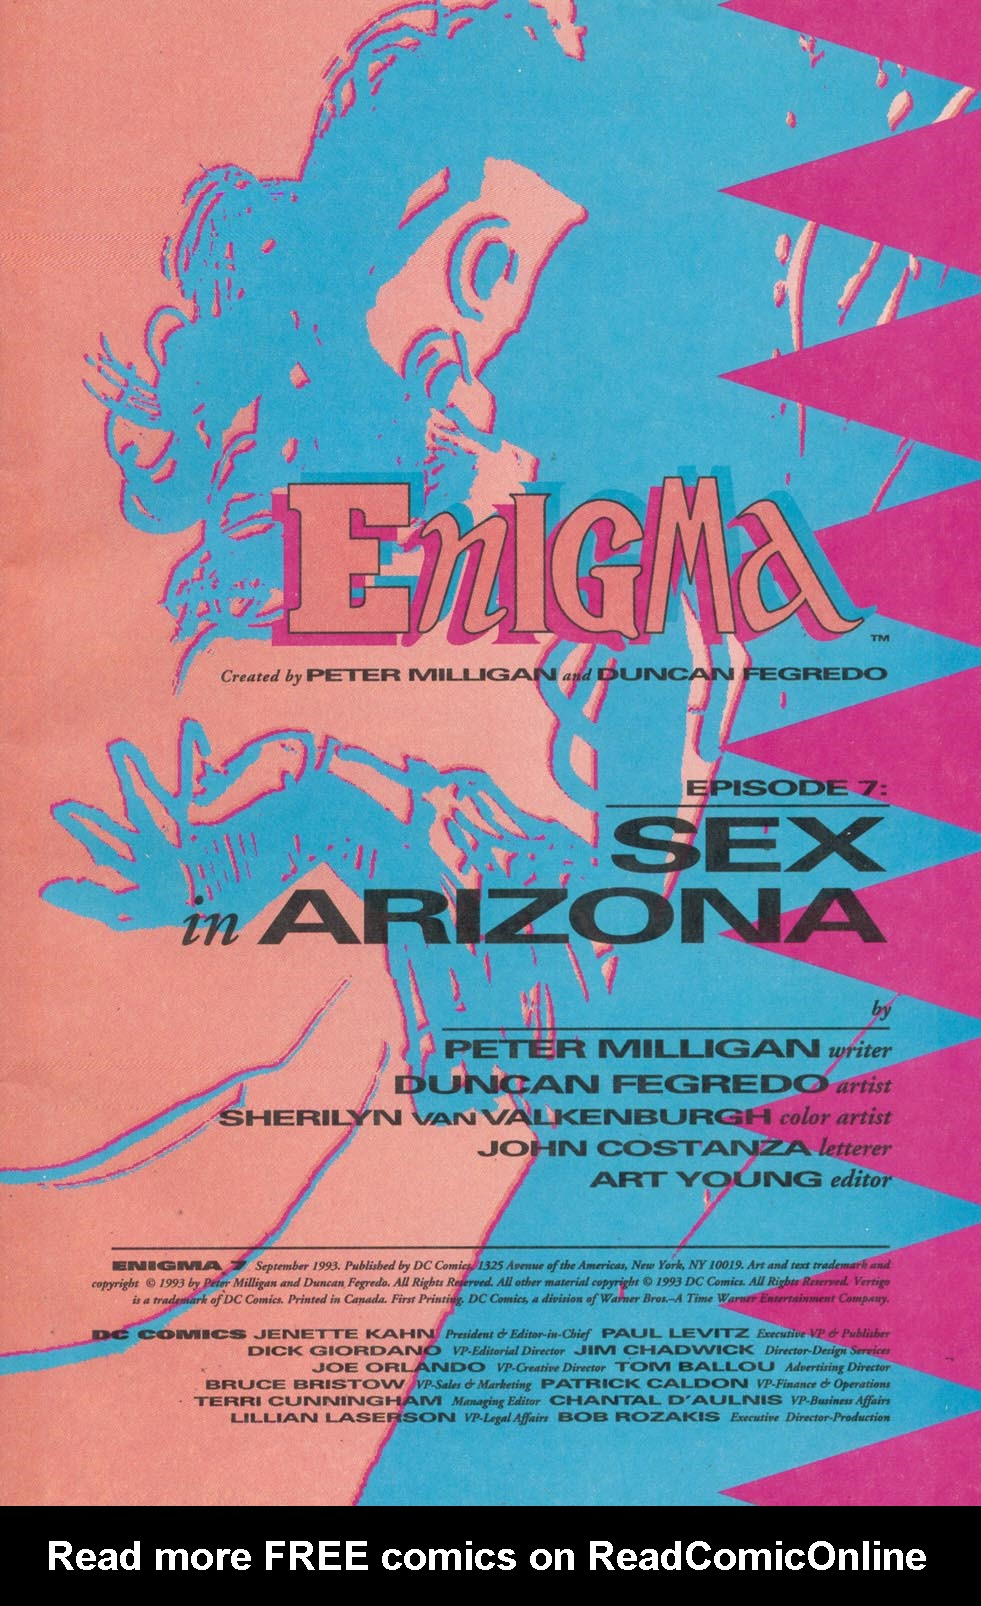 Read online Enigma comic -  Issue #7 - 2